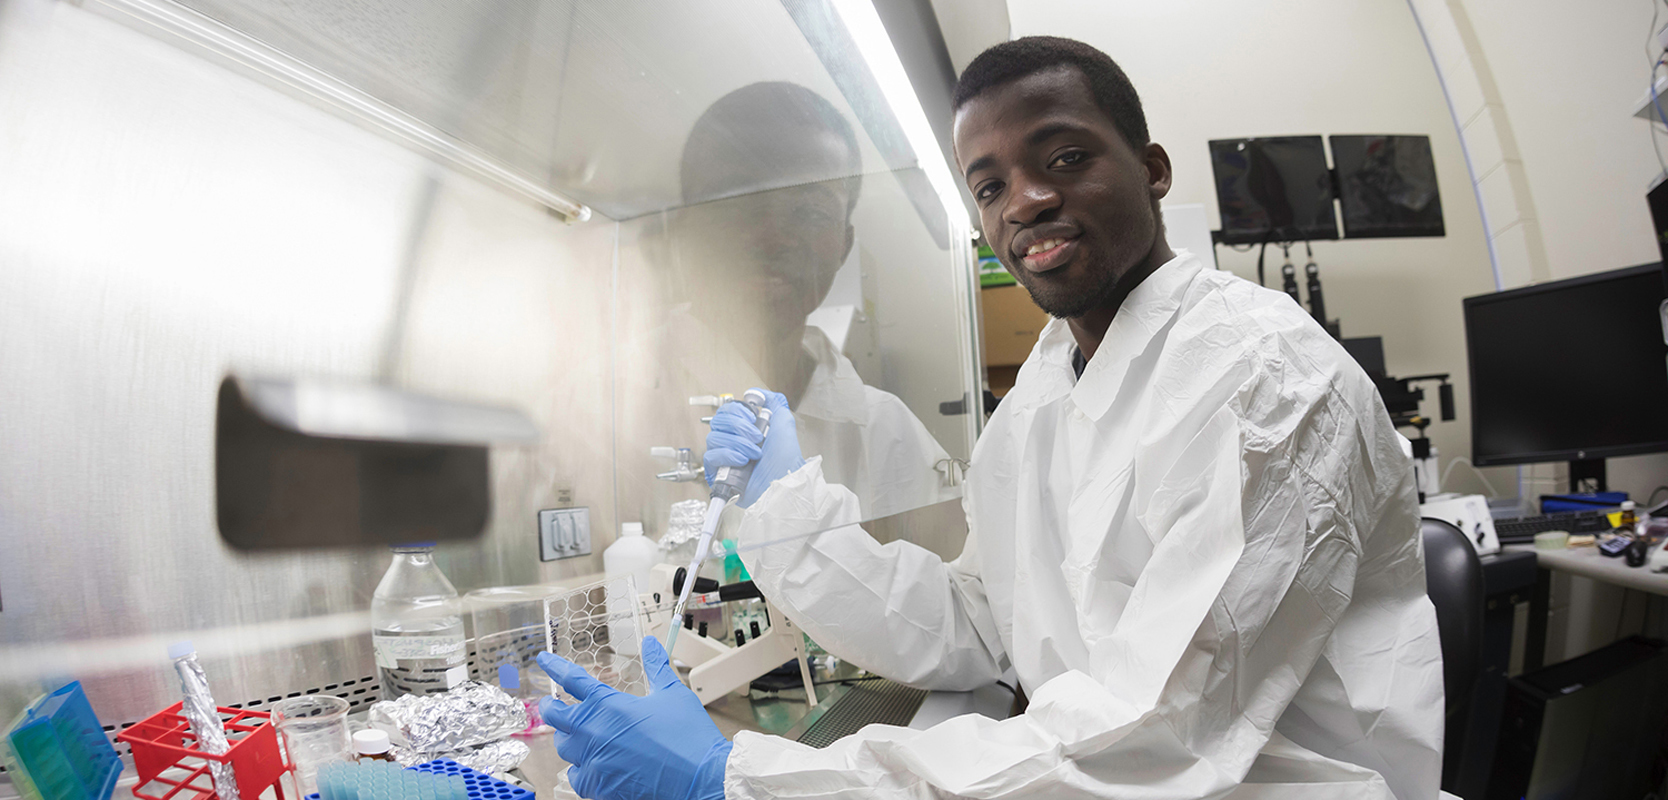 Kwasi Amofa Receives Fulbright Scholarship to Conduct Engineering Research in the Netherlands